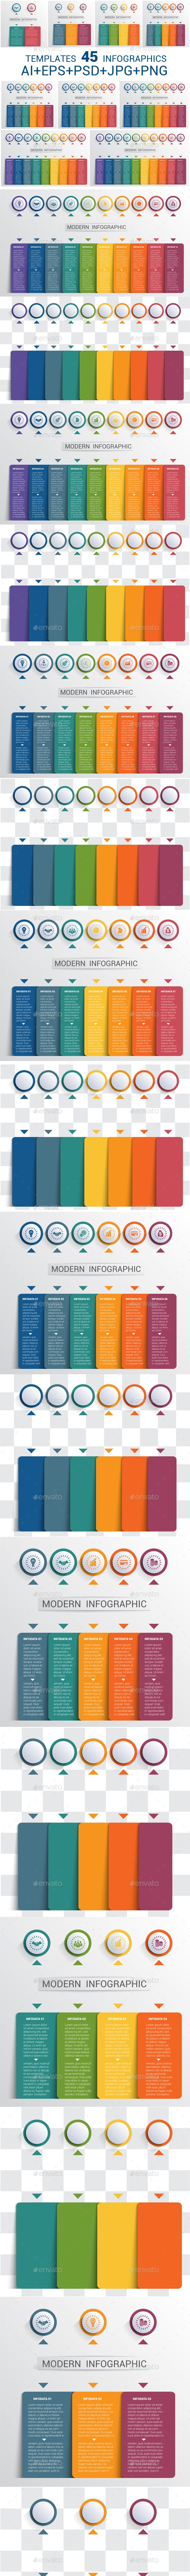 Template infographics 2,3,4,5,6,7,8,9,10 positions. - Infographics